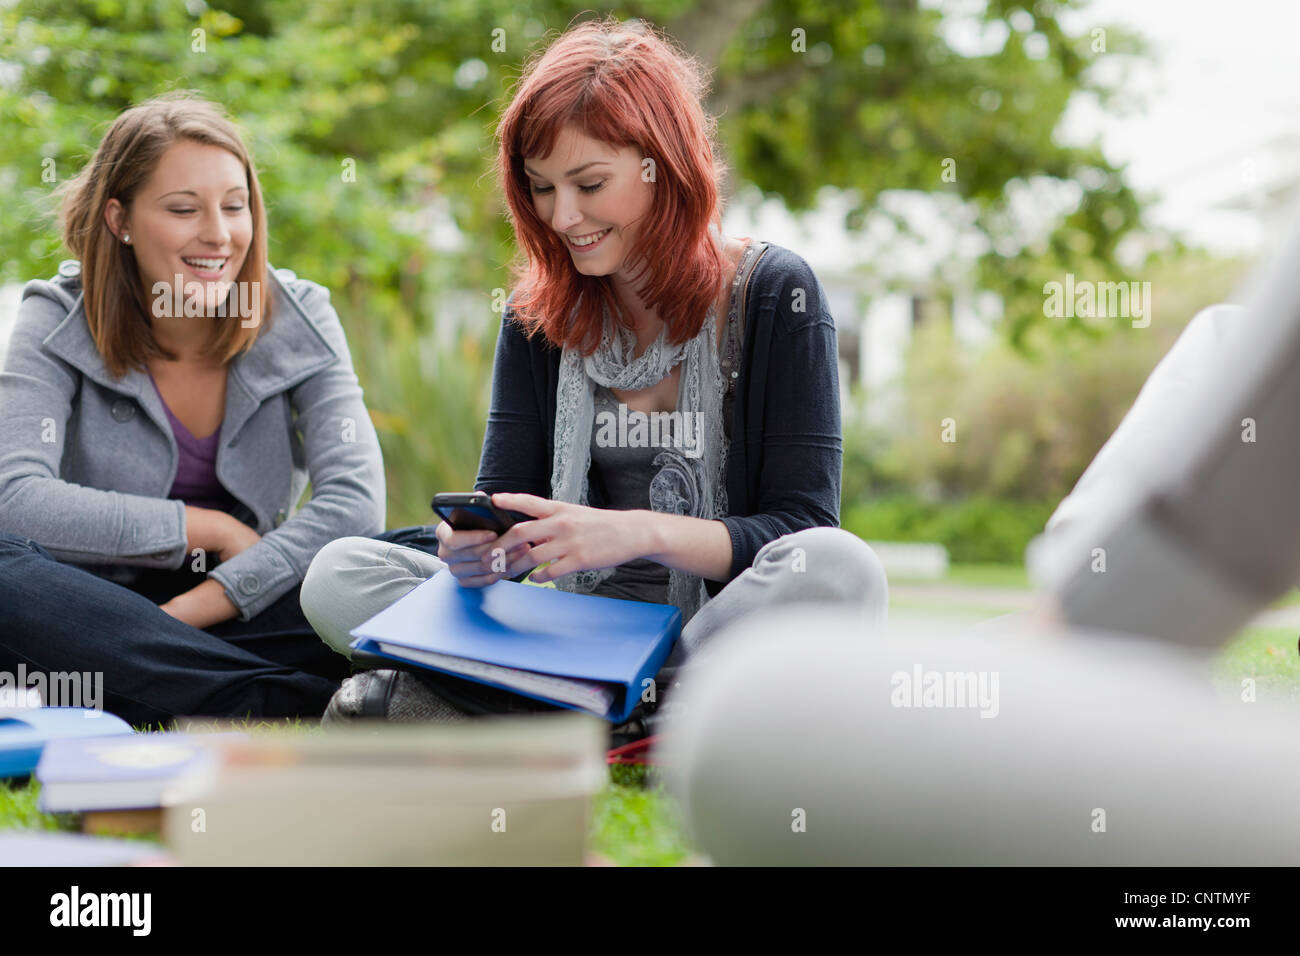 Students using cell phone on grass - Stock Image